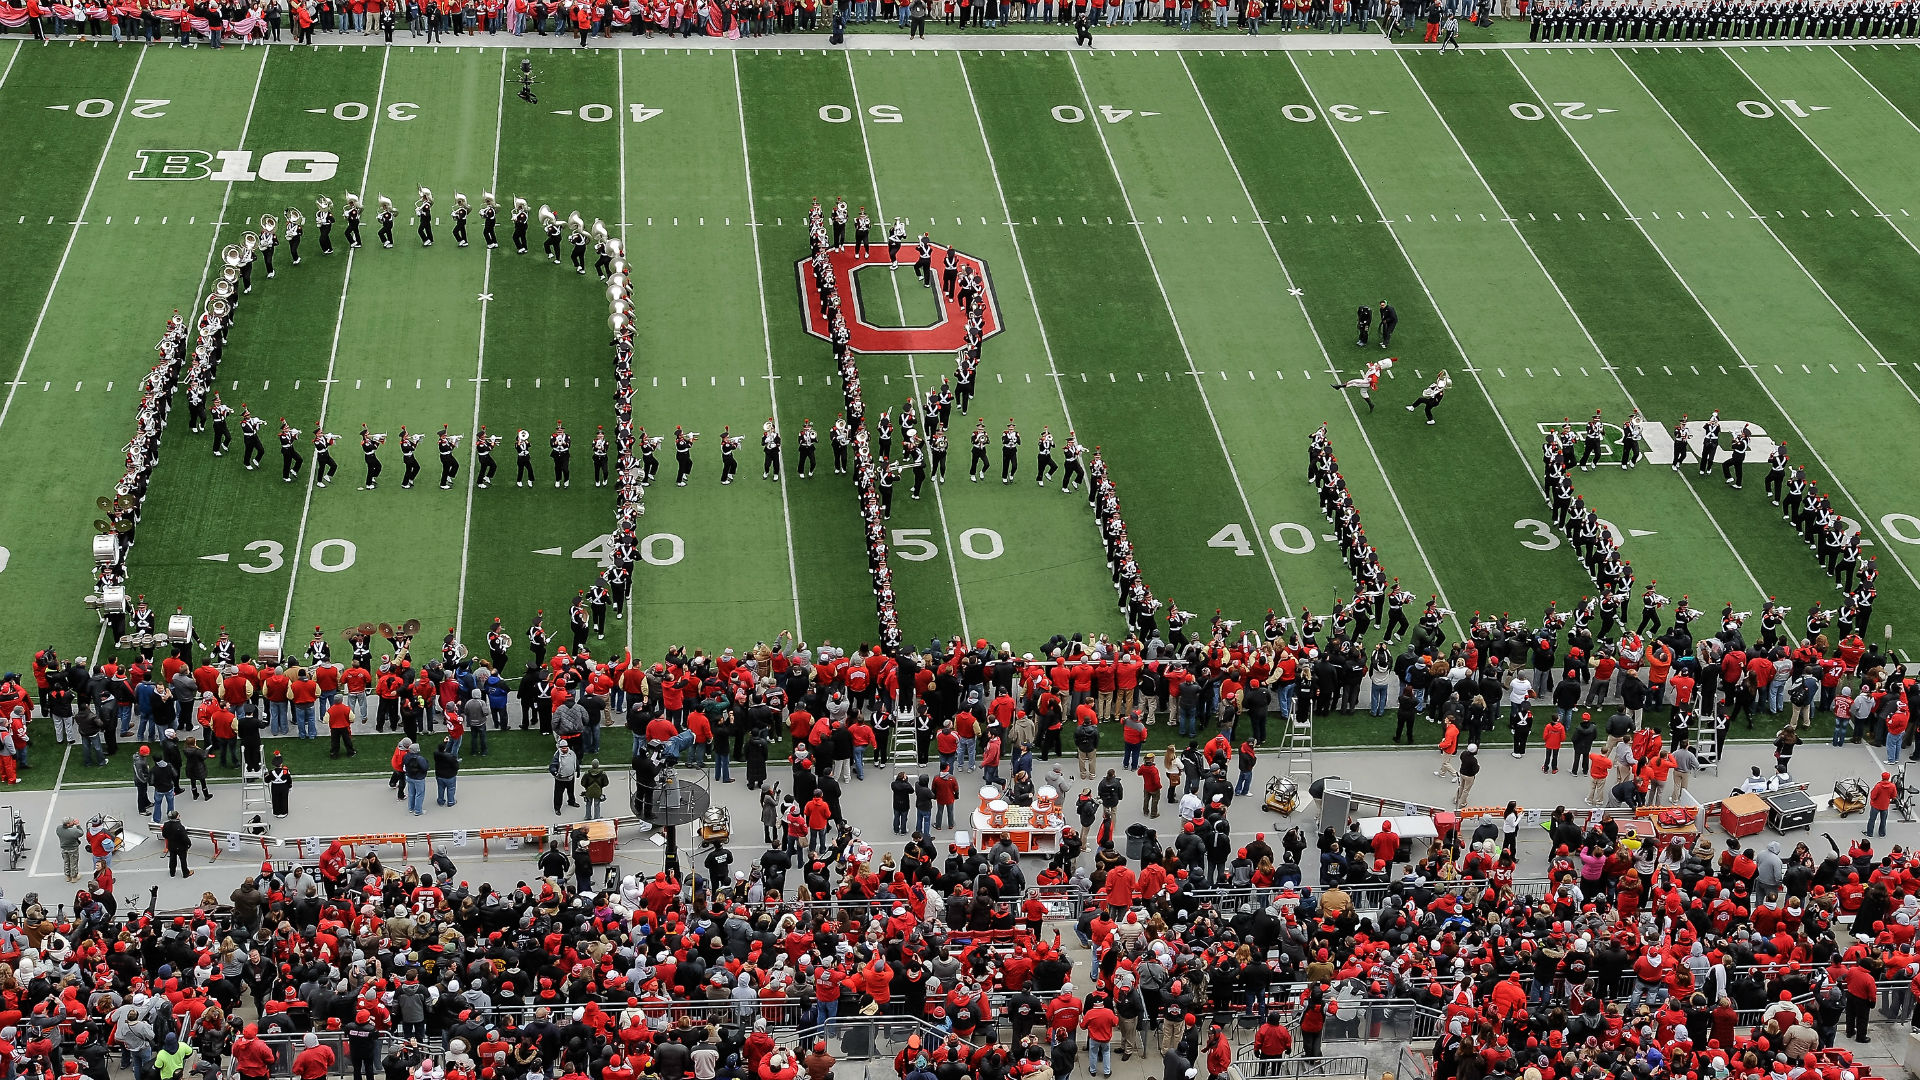 Ohio State marching band songbook reveals horrific song about Holocaust